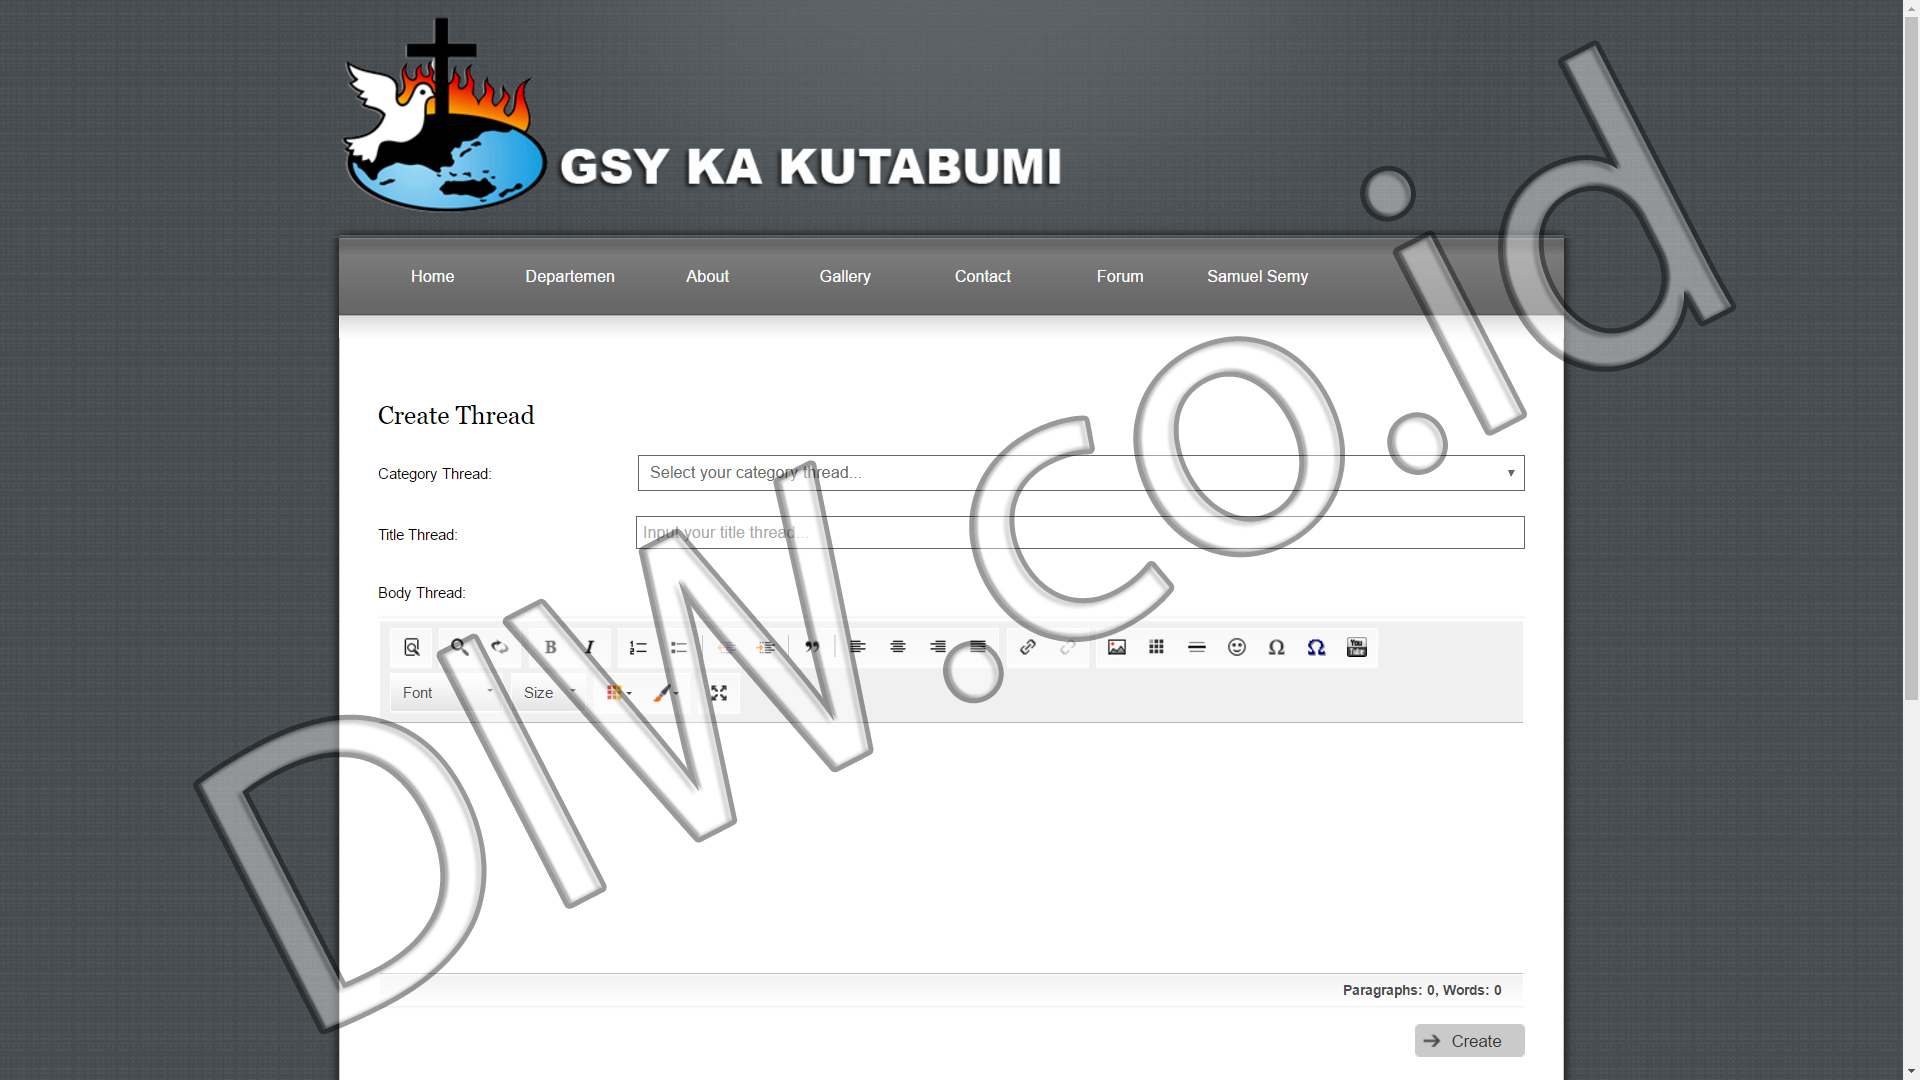 Portfolio 5 - GSY KA Kutabumi - Andri Sunardi - Freelancer - Web Developer - CEO DIW.co.id